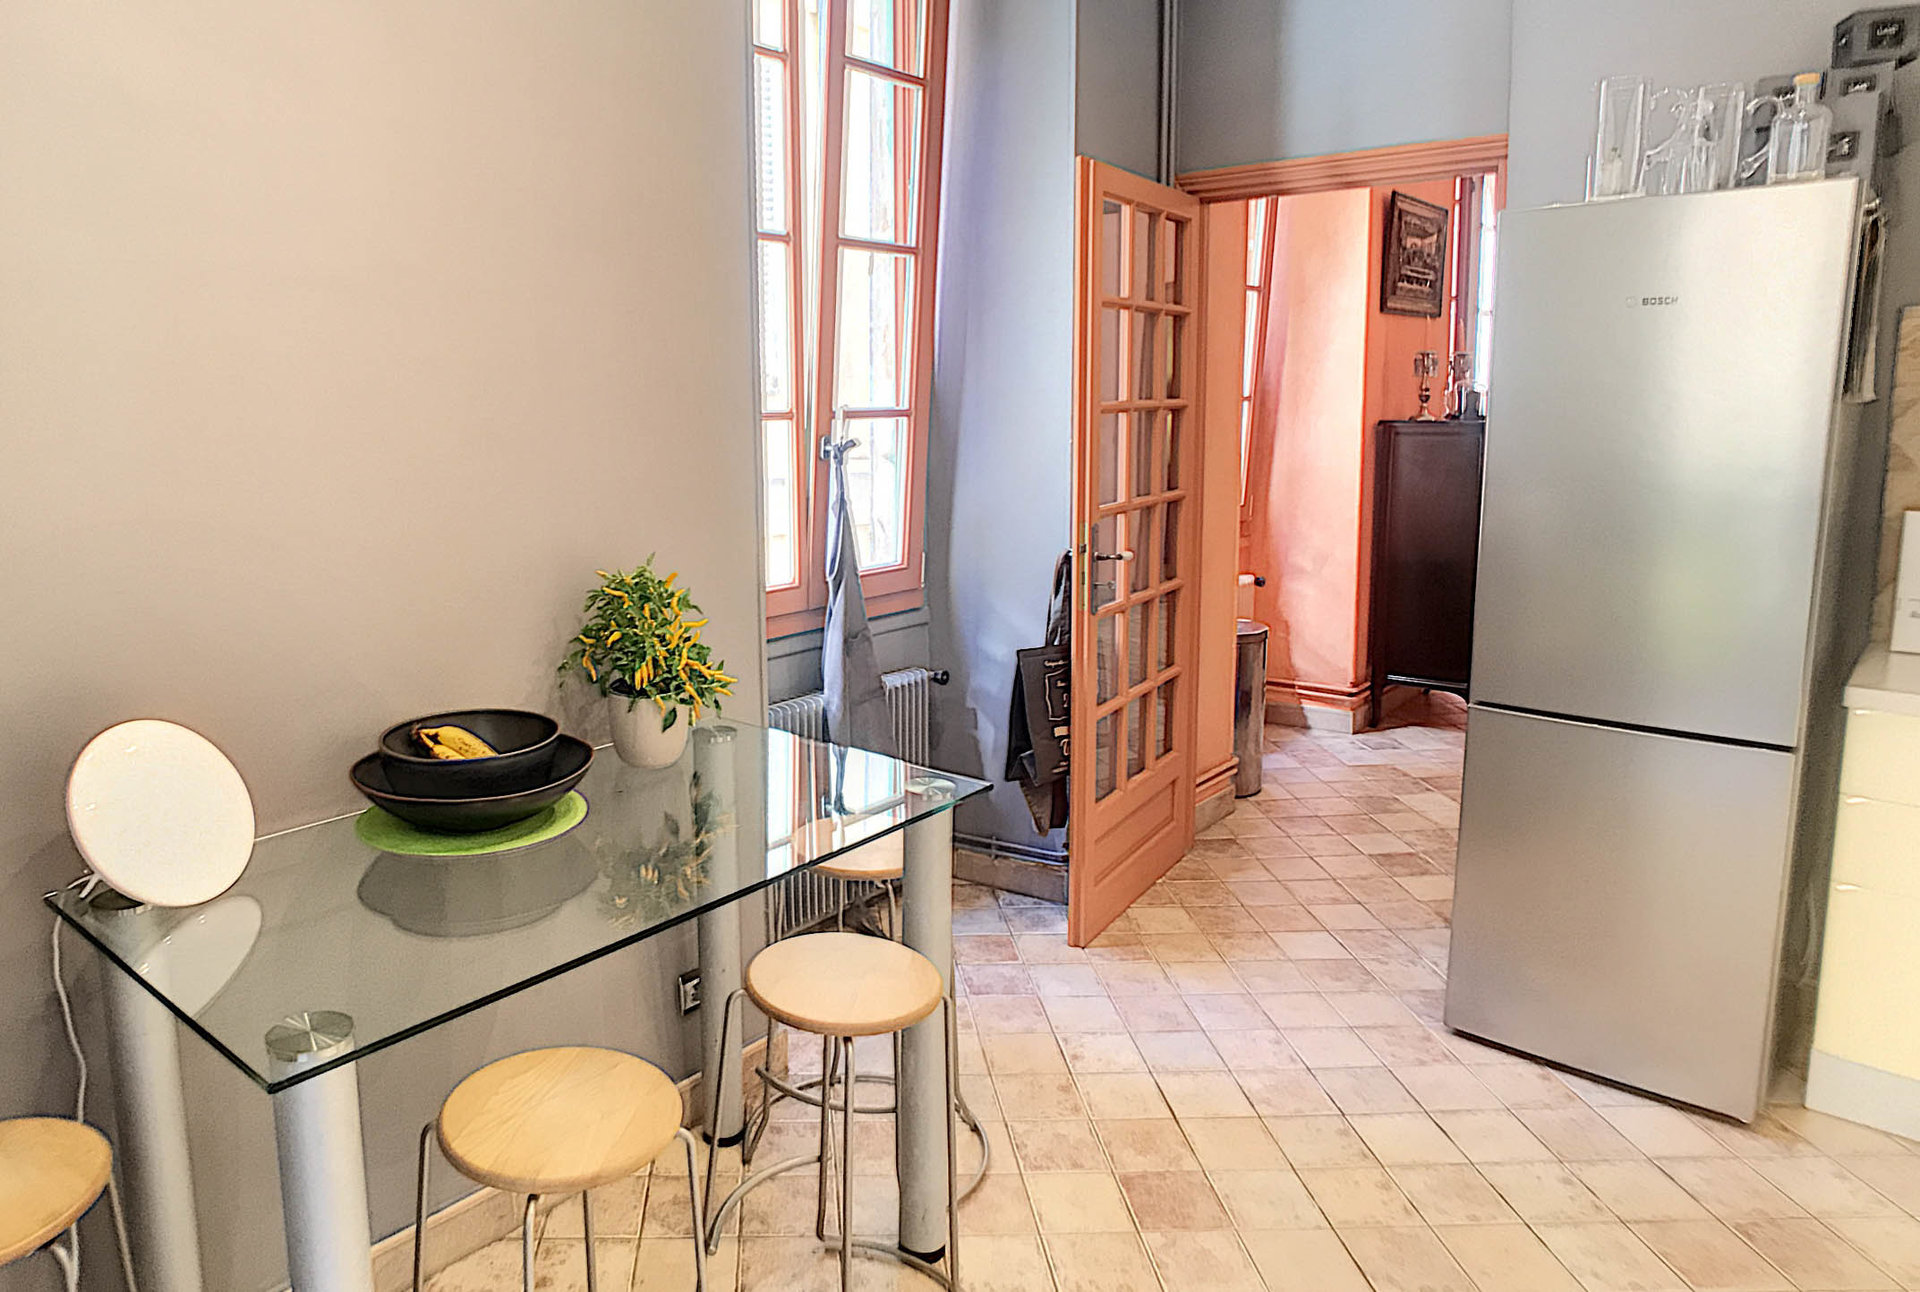 SALE Apartment 3 Rooms 91m² NICE Old Town Balcony Sublime Cellar